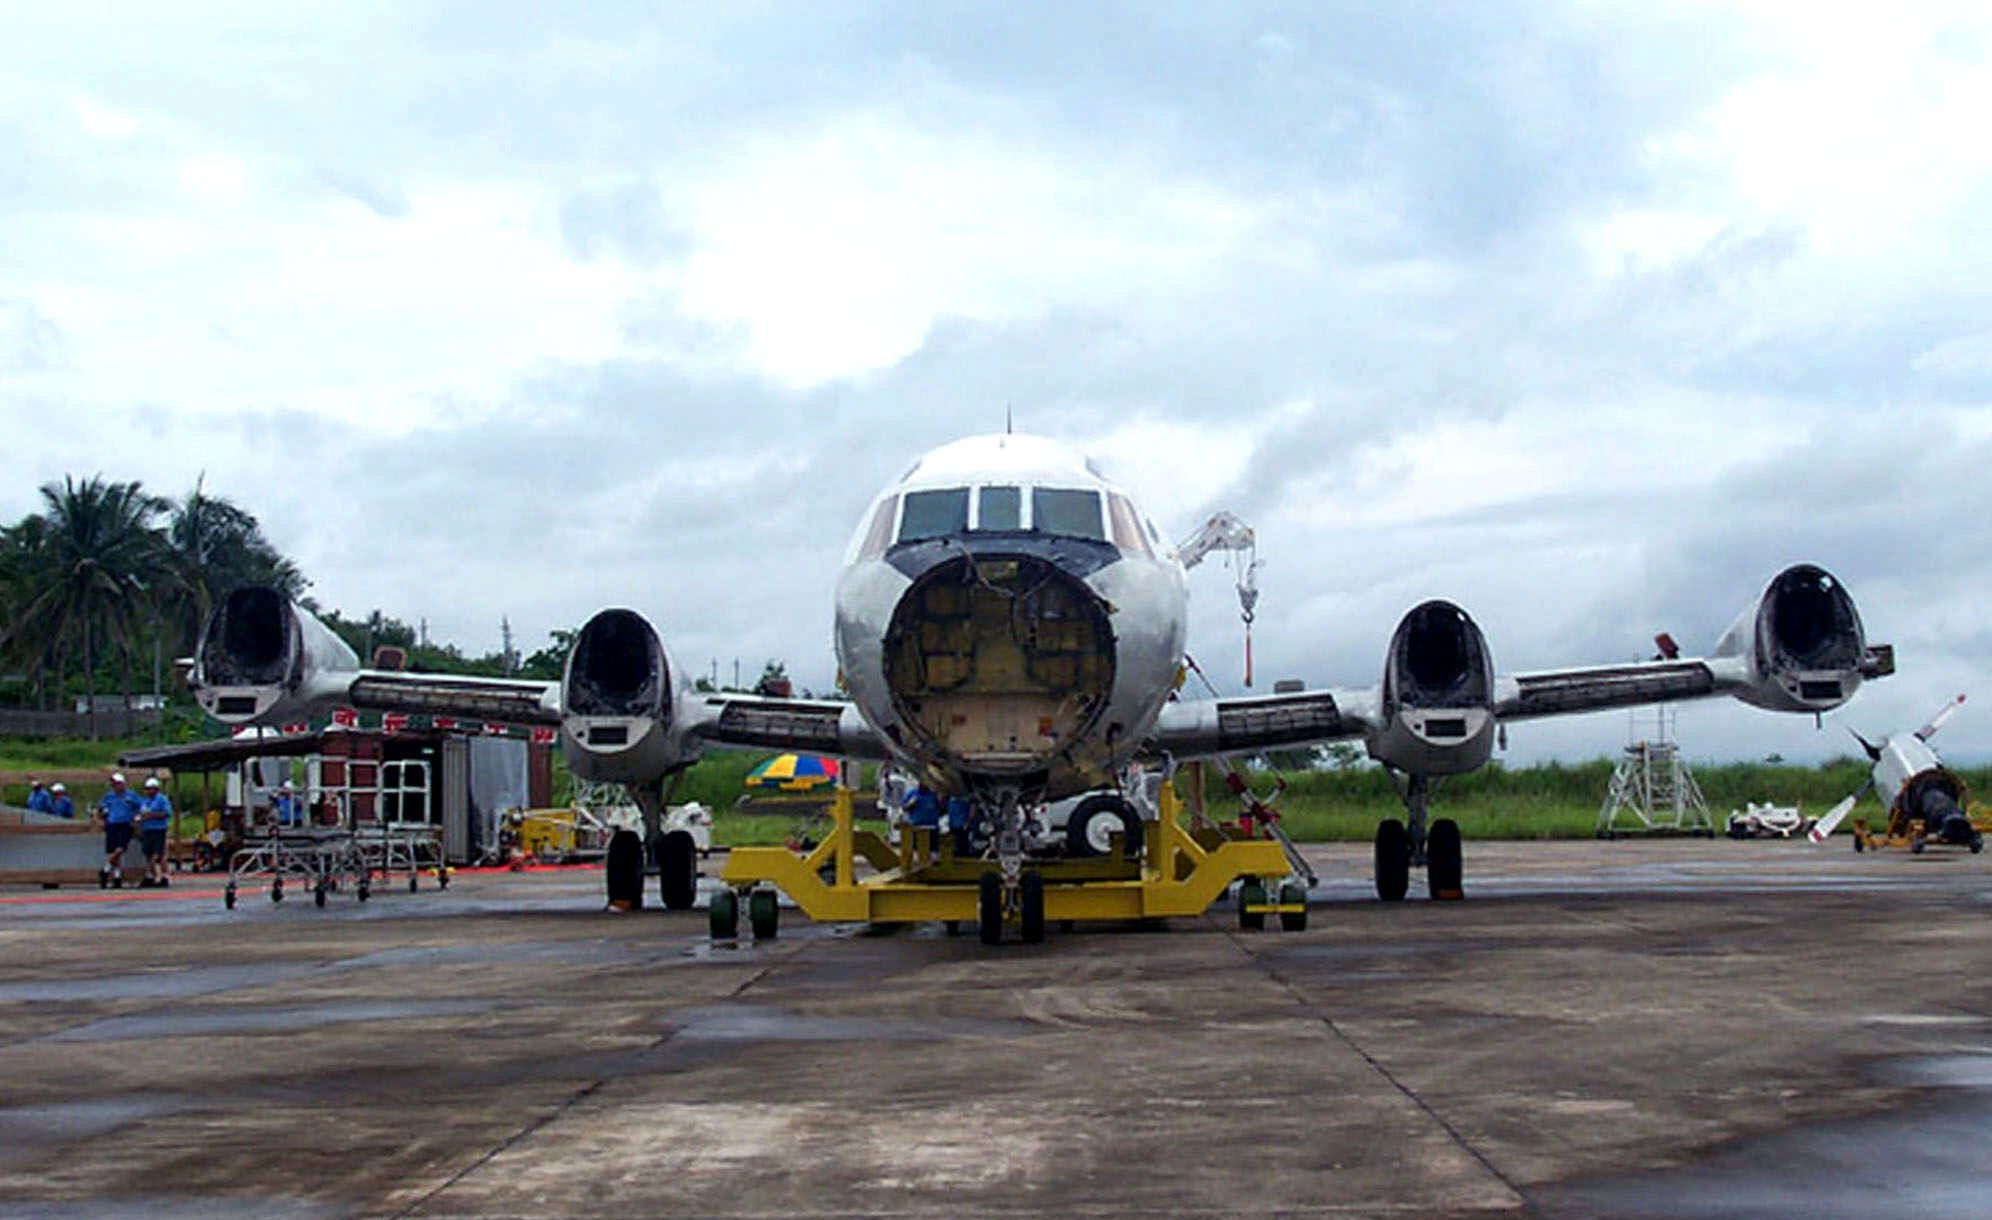 The Lockheed Martin Aeronautics Company's recovery team removed the four propeller-engine assemblies from the EP-3 on Saturday June 23, 2001. The recovery team is performing disassembly work on the EP-3 at Lingshui Airfield in preparation for its return to the United States. The disassembly process should be completed by July 4. (AP Photo/Lockheed Martin Aeronautics Co.,HO)